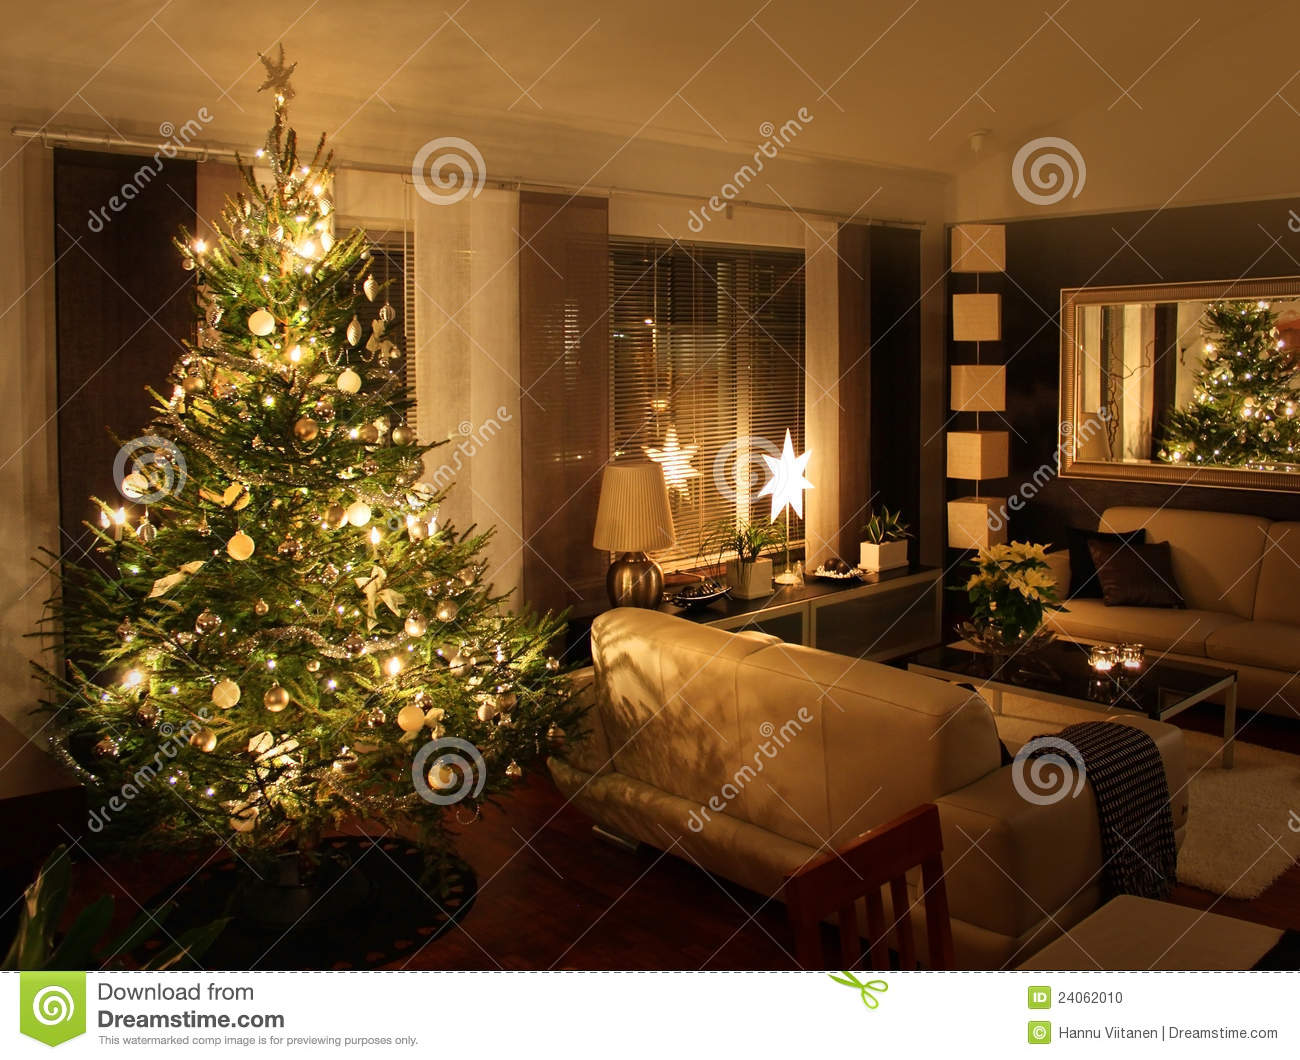 Christmas Tree Living Room christmas tree in living room stock photo - image: 61334757